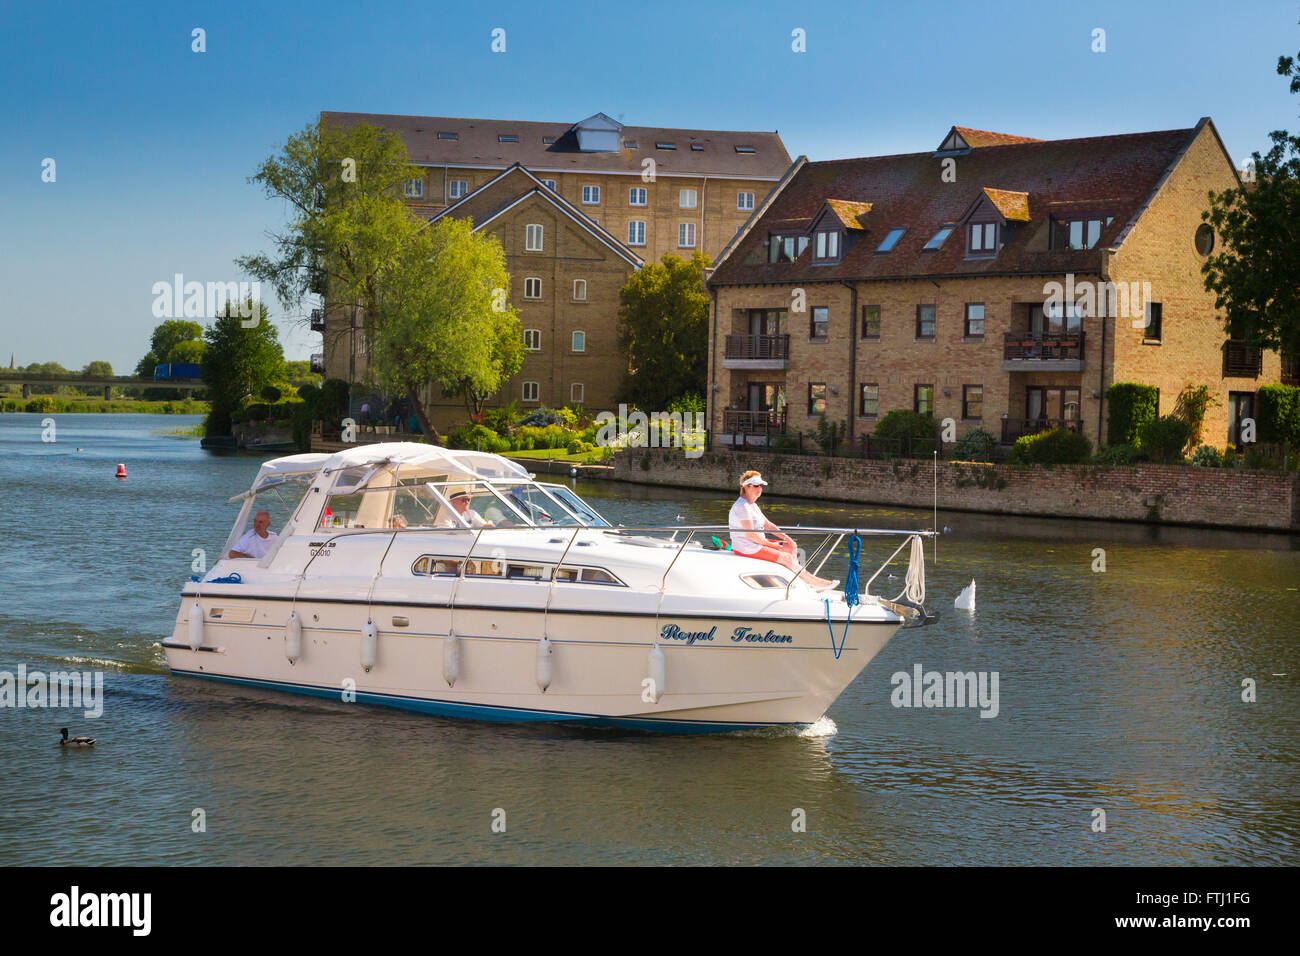 boat on the river Great Ouse in St Ives in Cambridgeshire UK - Stock Image